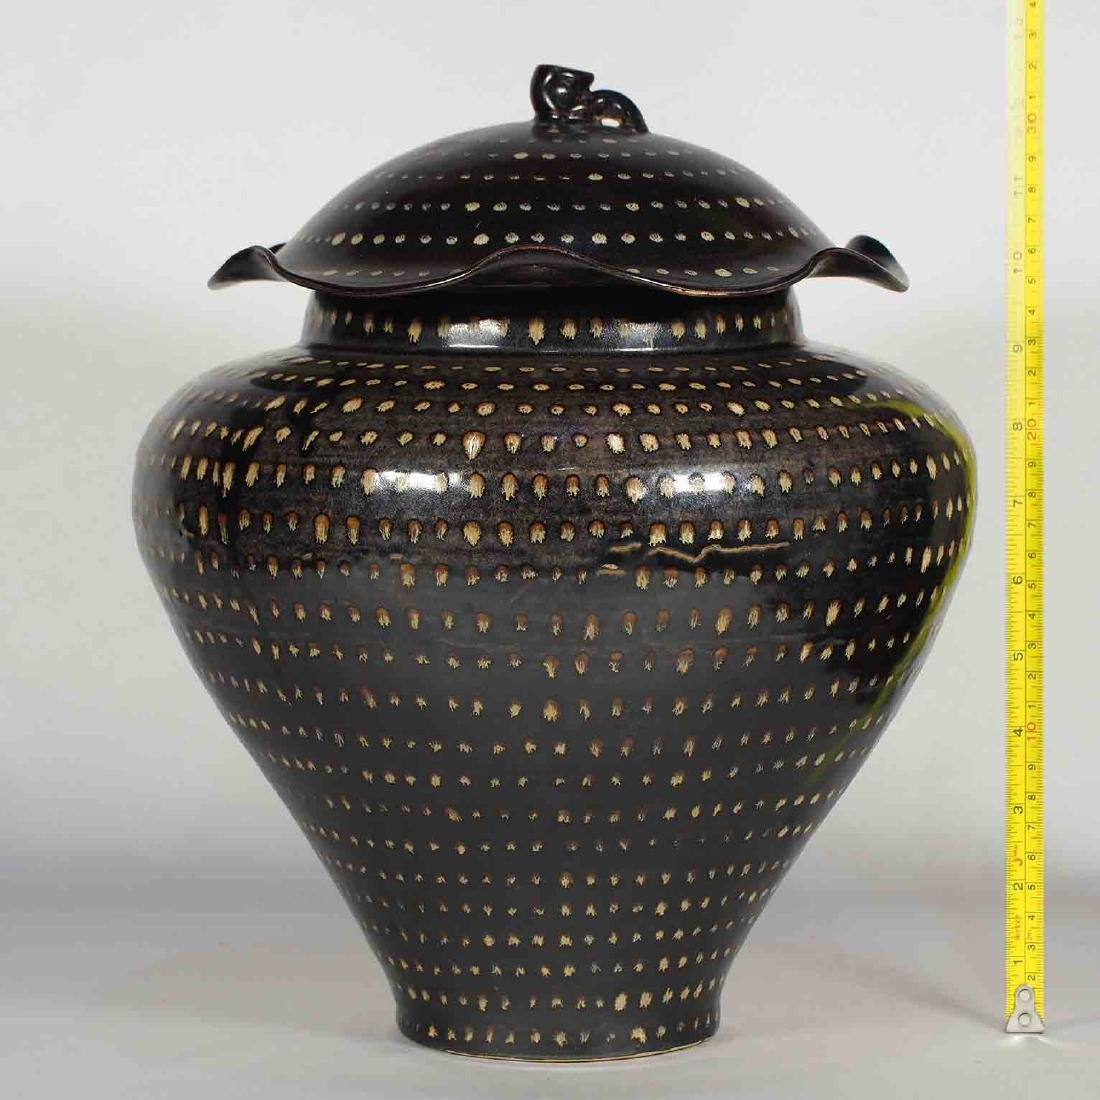 Jizhou Dotted Jar with Lid, Southern Song Dynasty - 11